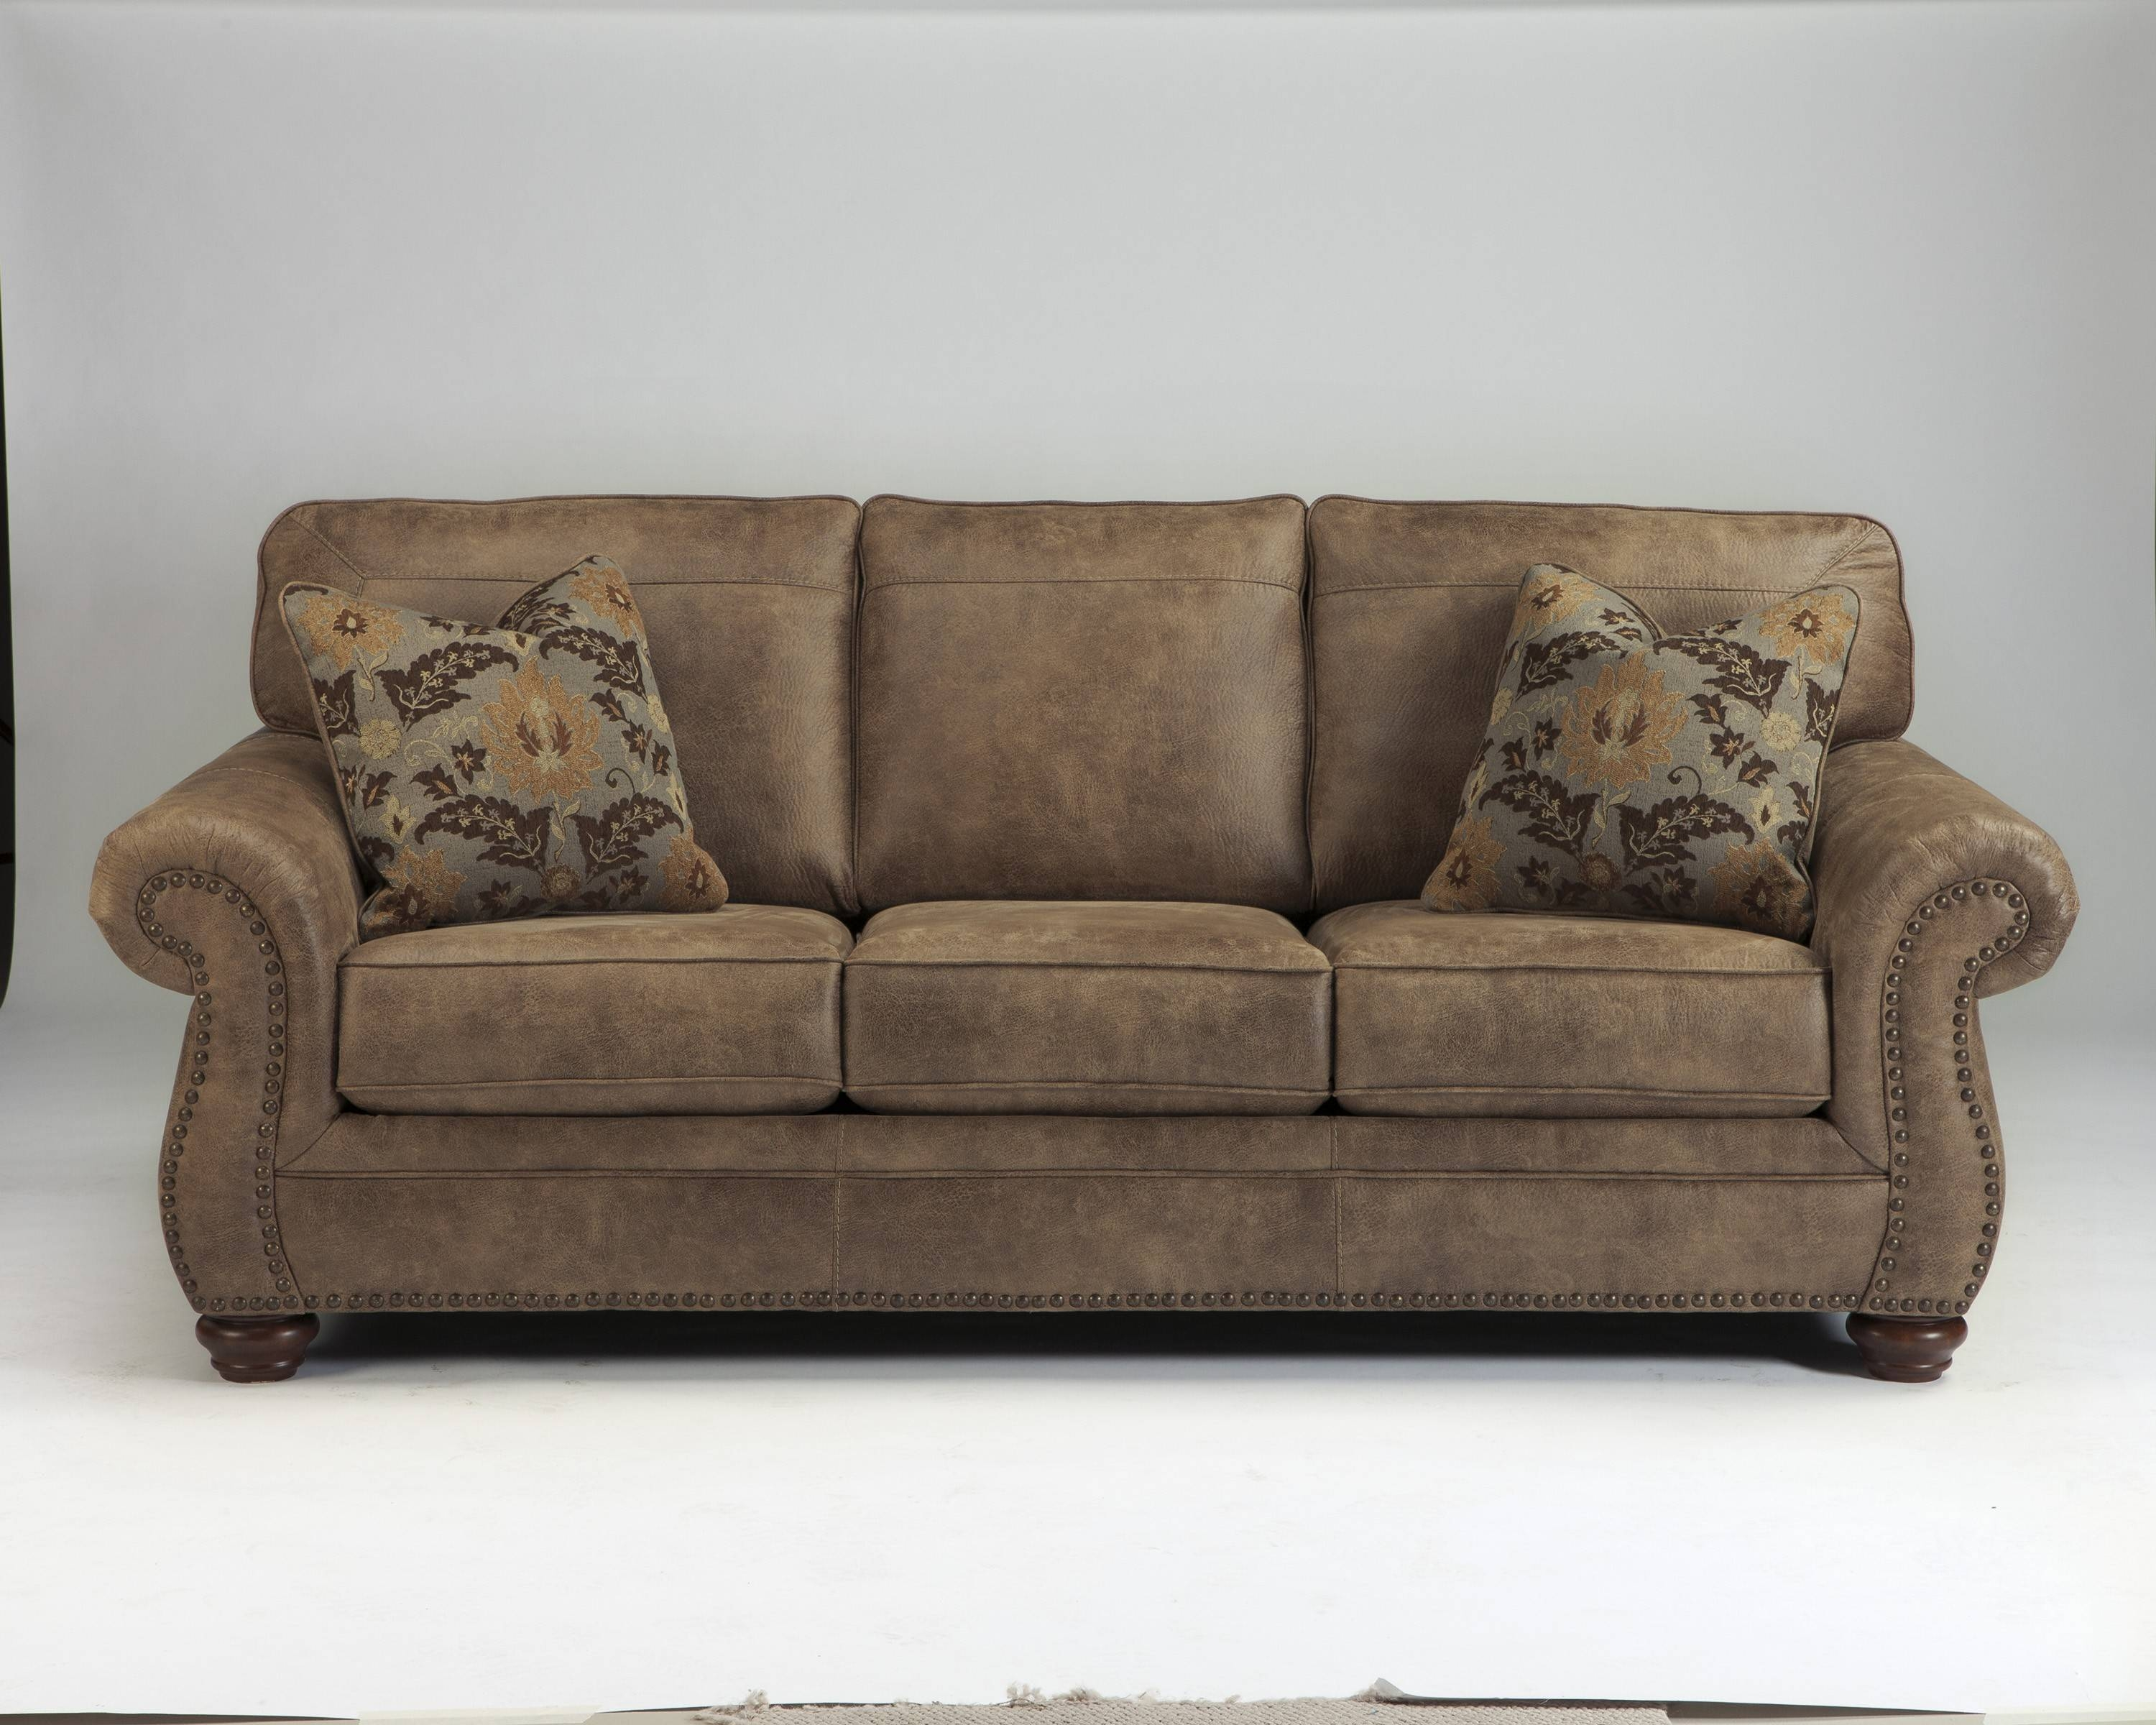 Fabric Sofas For Sale | Tehranmix Decoration within Fabric Sofas (Image 10 of 30)